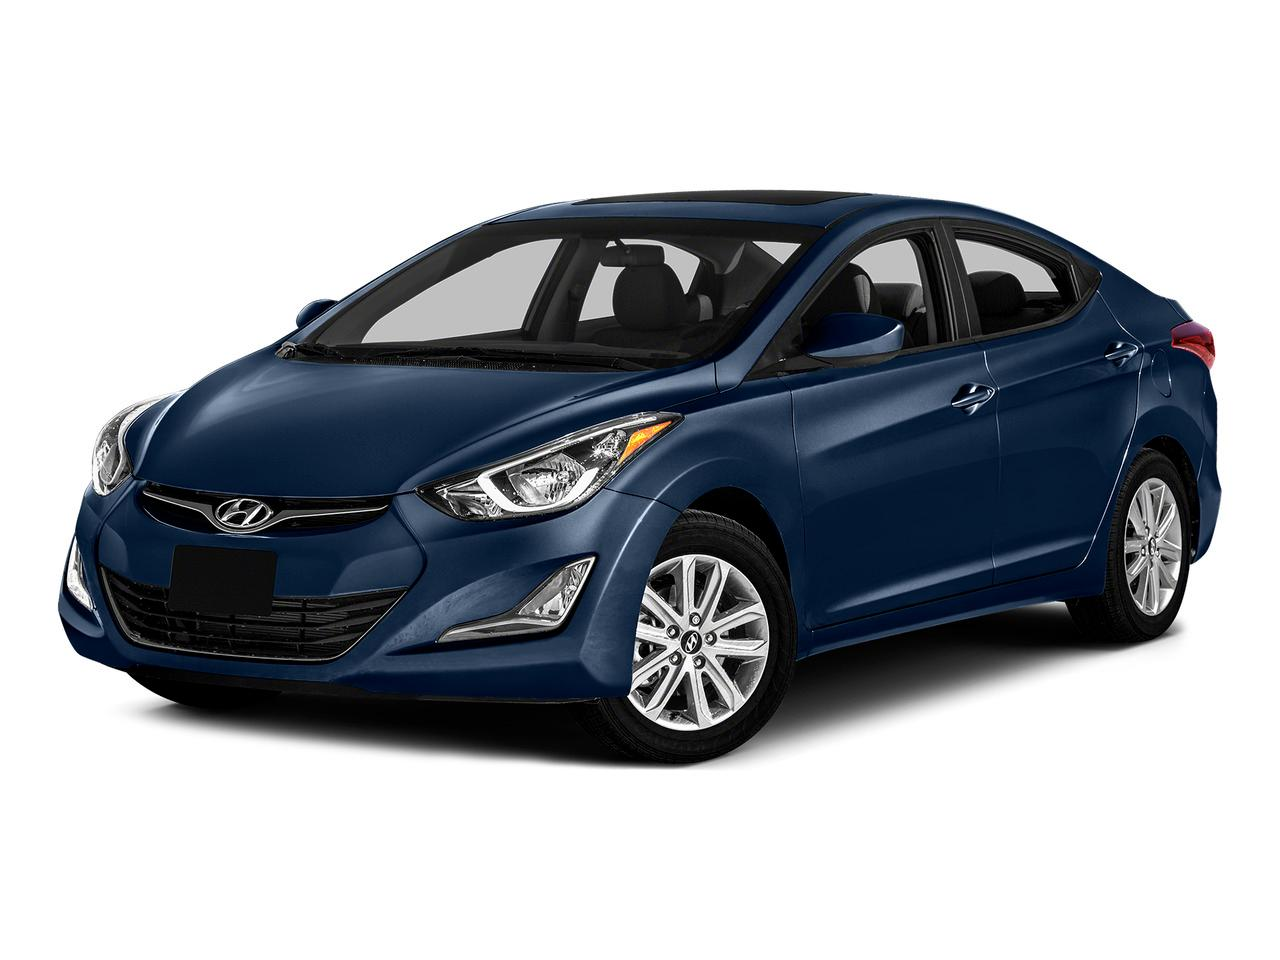 2016 Hyundai Elantra Vehicle Photo in Killeen, TX 76541